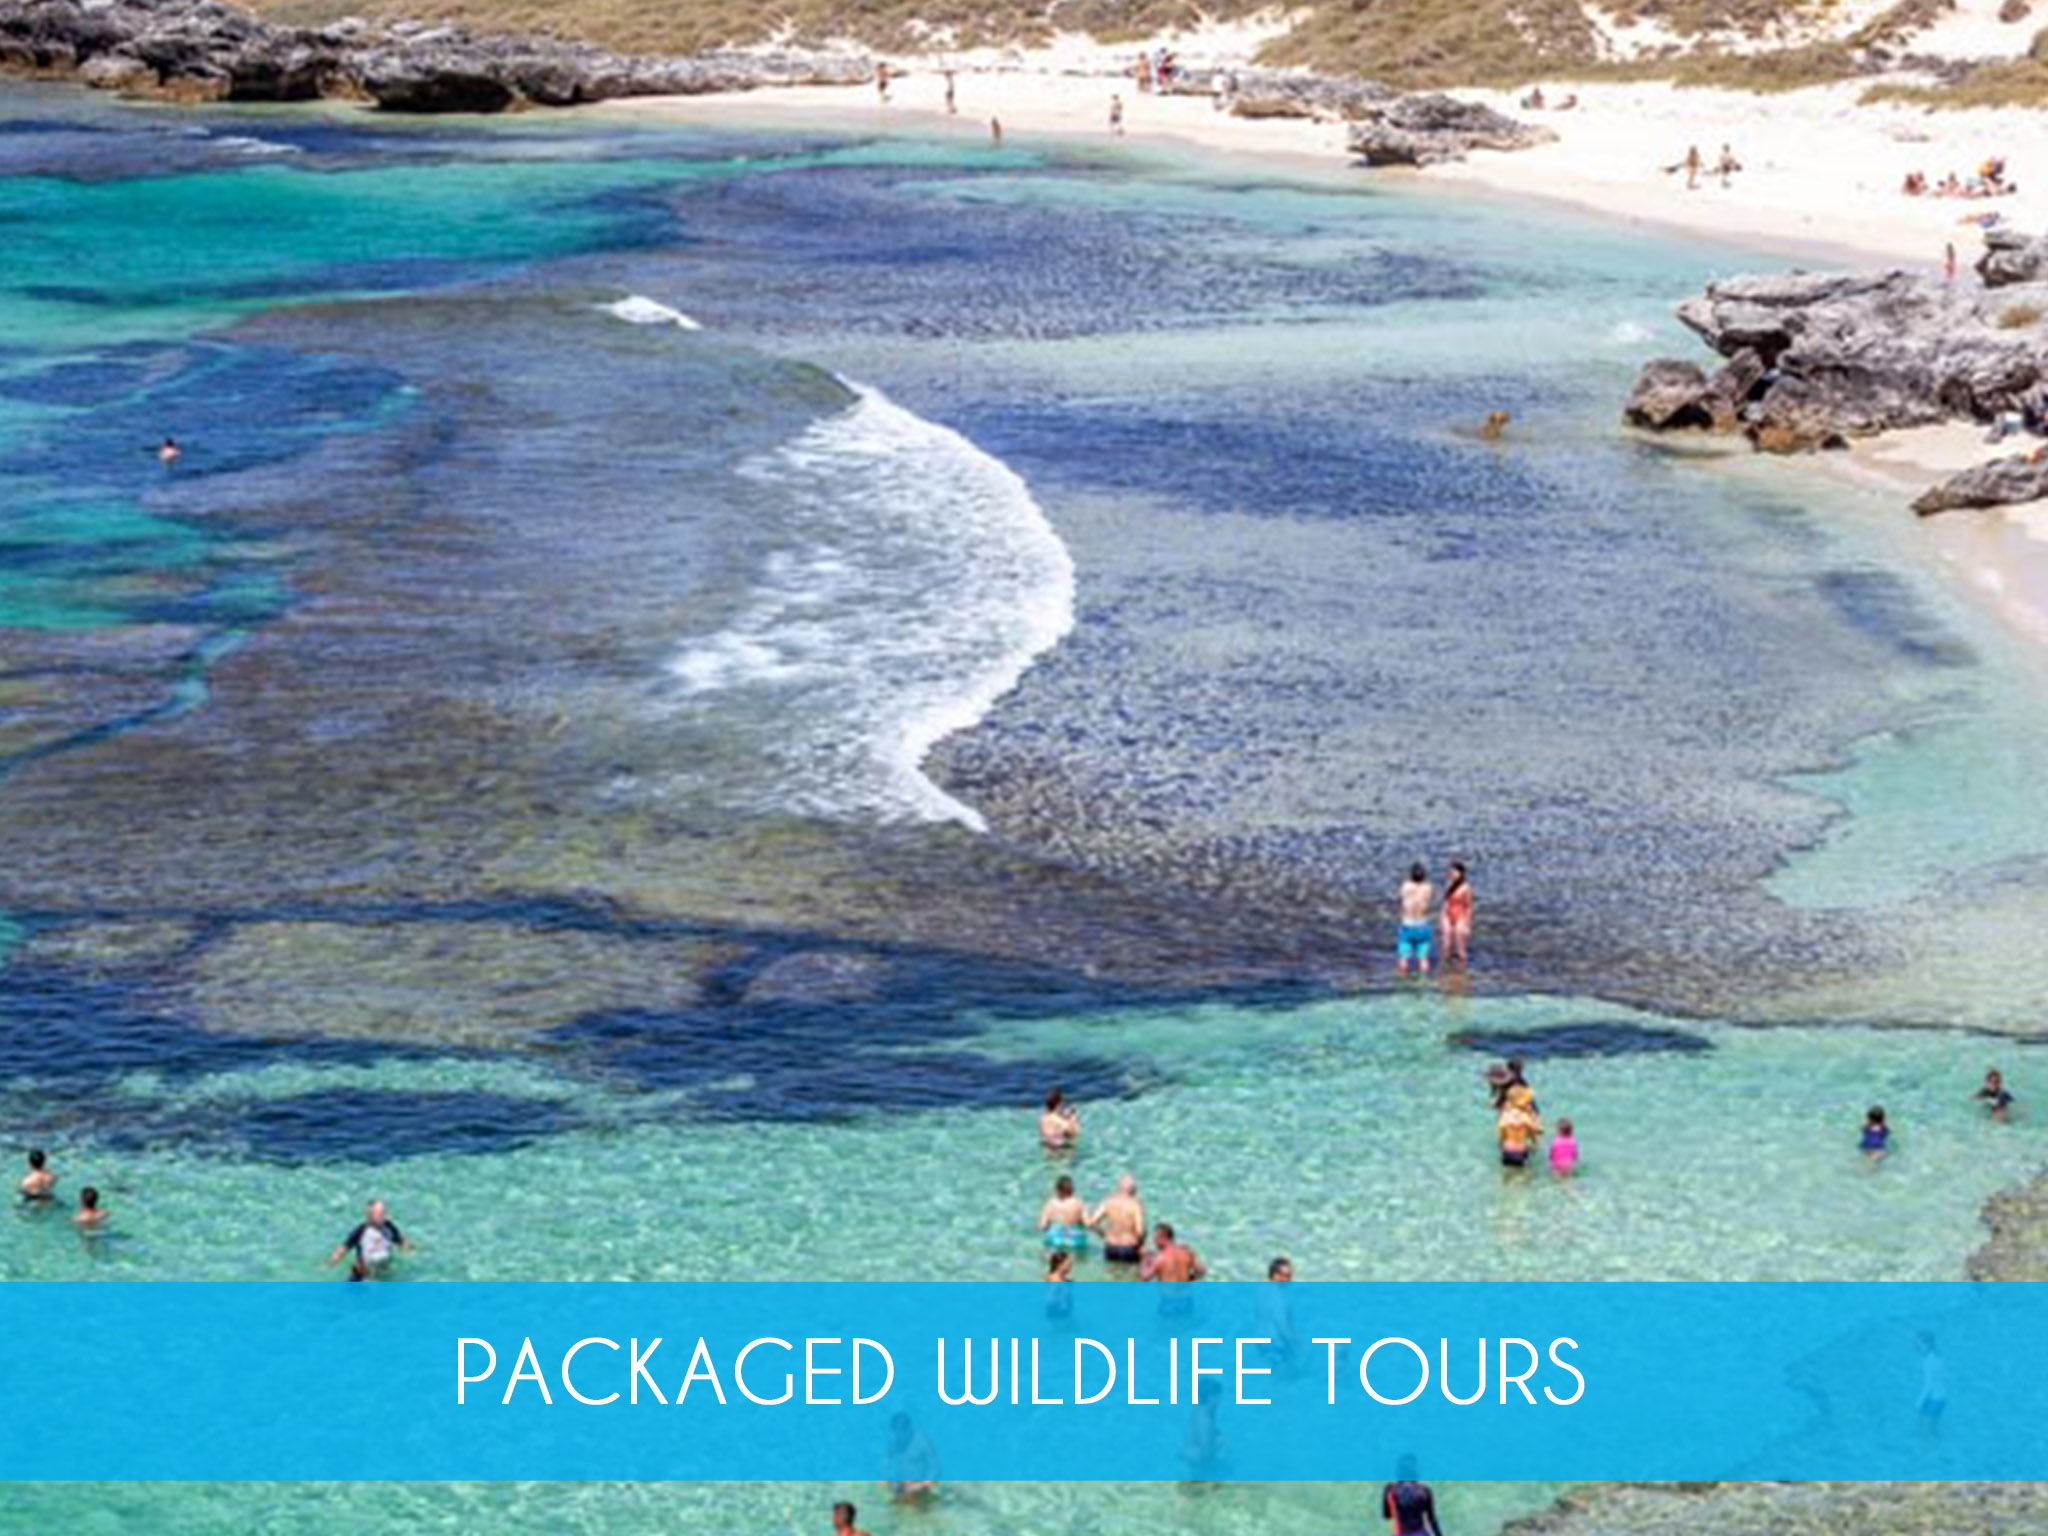 Packaged Wildlife Tours    The perfect pass for those who enjoy scenic coastal cruises, have a passion for marine life and life on the wild side. Combines Dolphin Cruise, Perth Lunch Cruise & Rottnest Island Ferry with Coach Tour     Adults from $317.50   MORE INFO